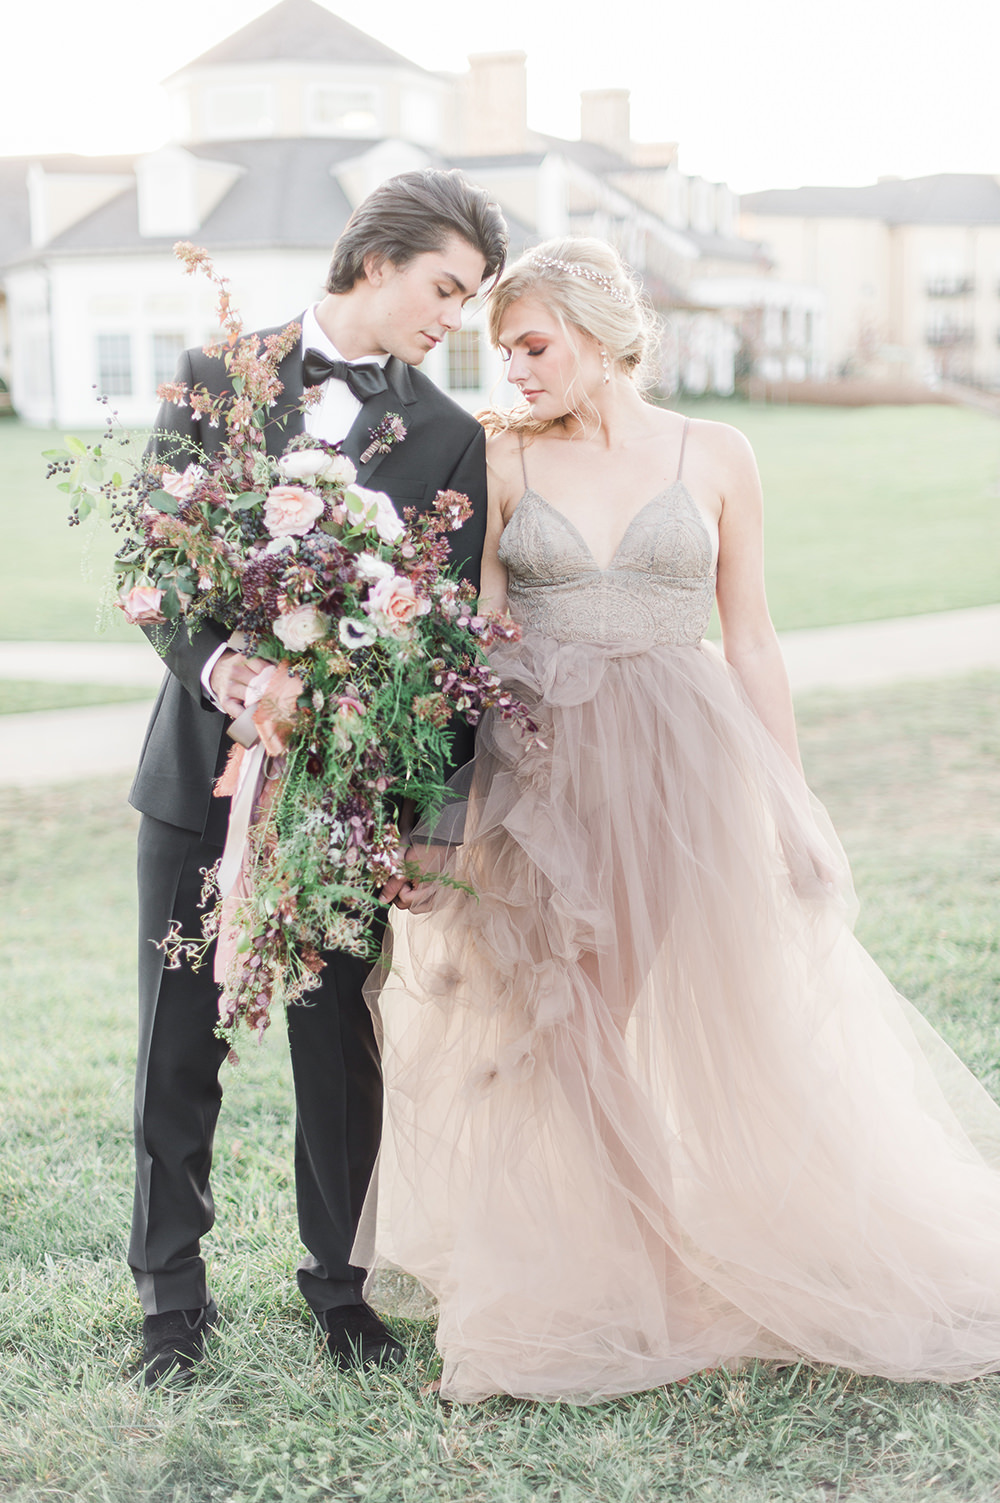 Ethereal wedding inspiration with vintage accents ruffled ethereal wedding inspiration with vintage accents photo by jenny b photos https junglespirit Gallery